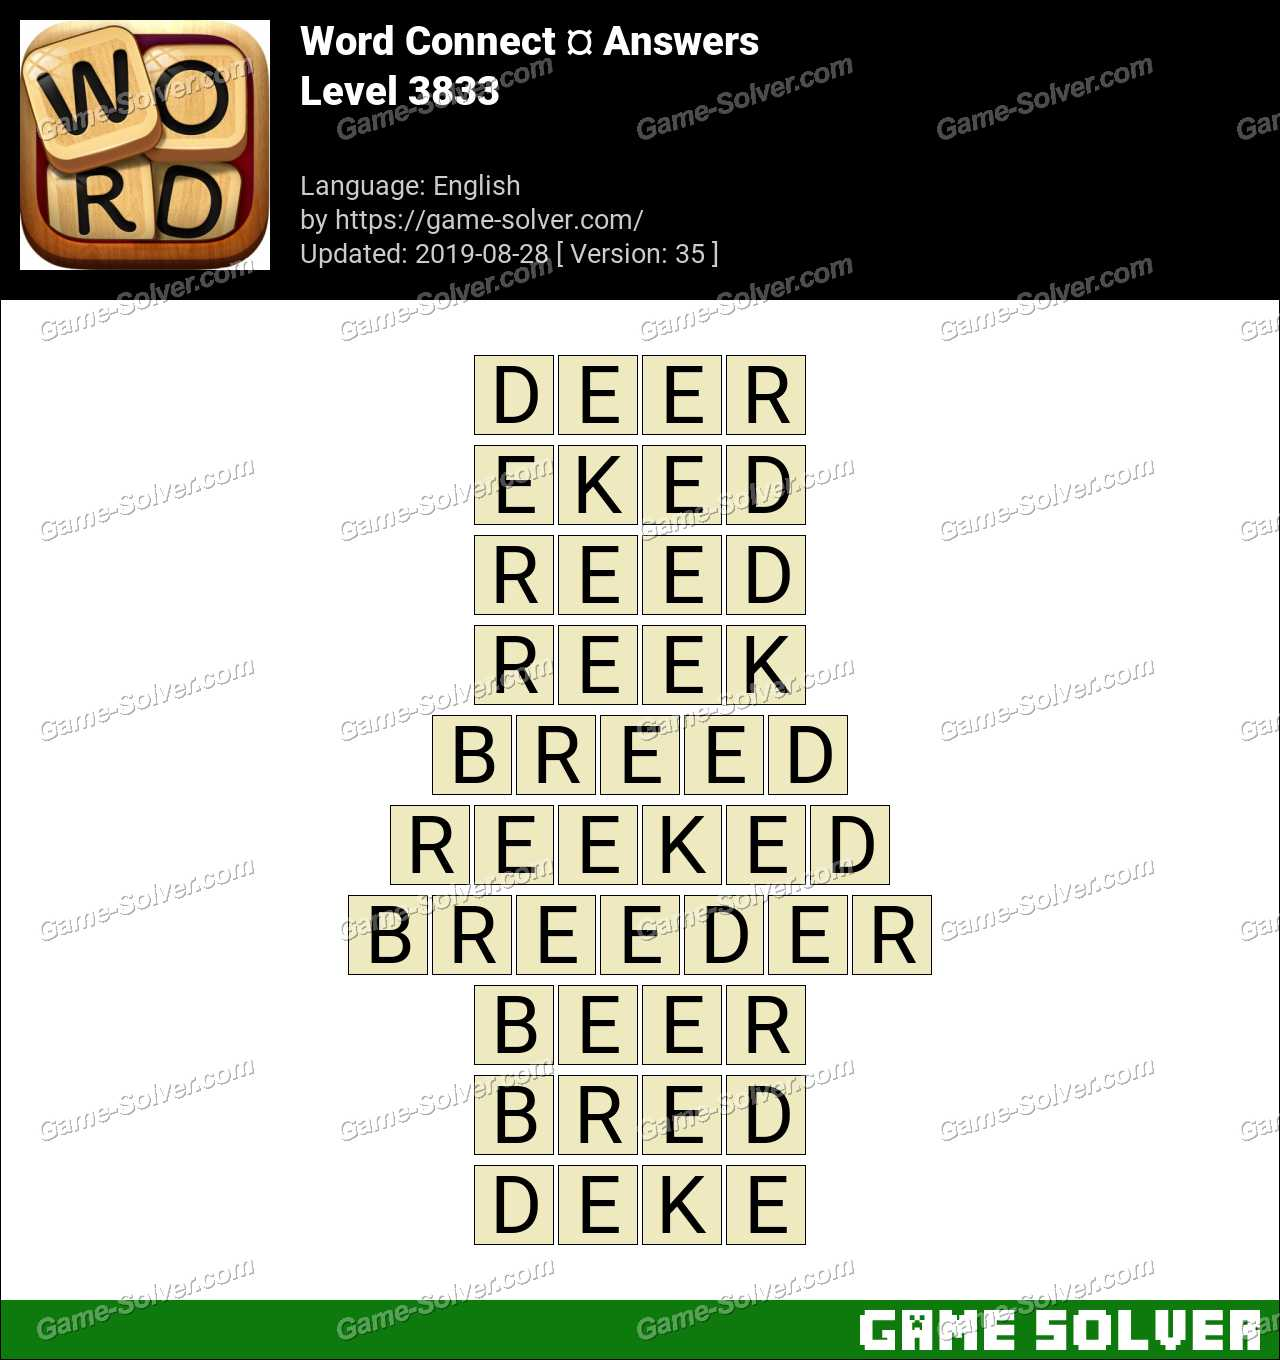 Word Connect Level 3833 Answers